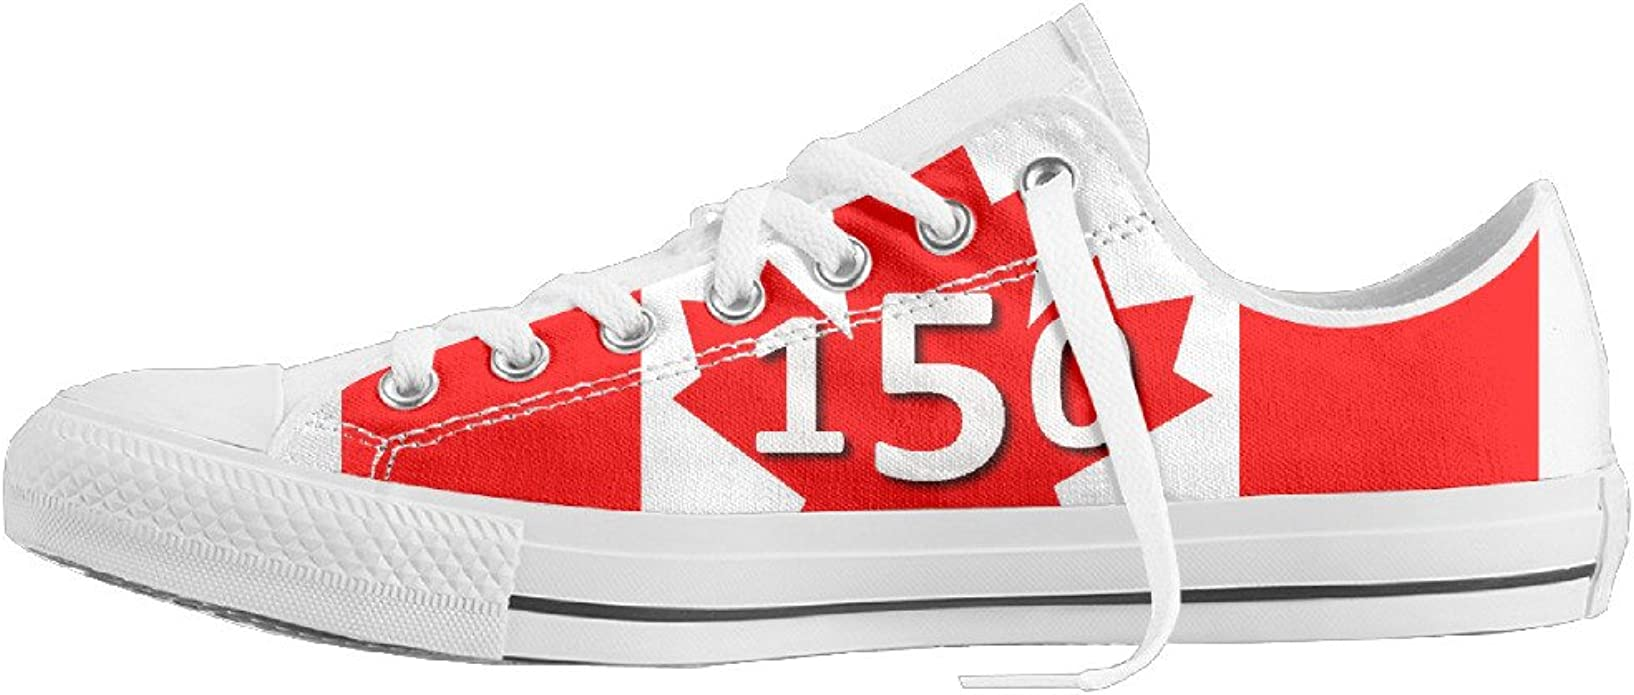 Sneaker For Women Mens Canvas Shoes